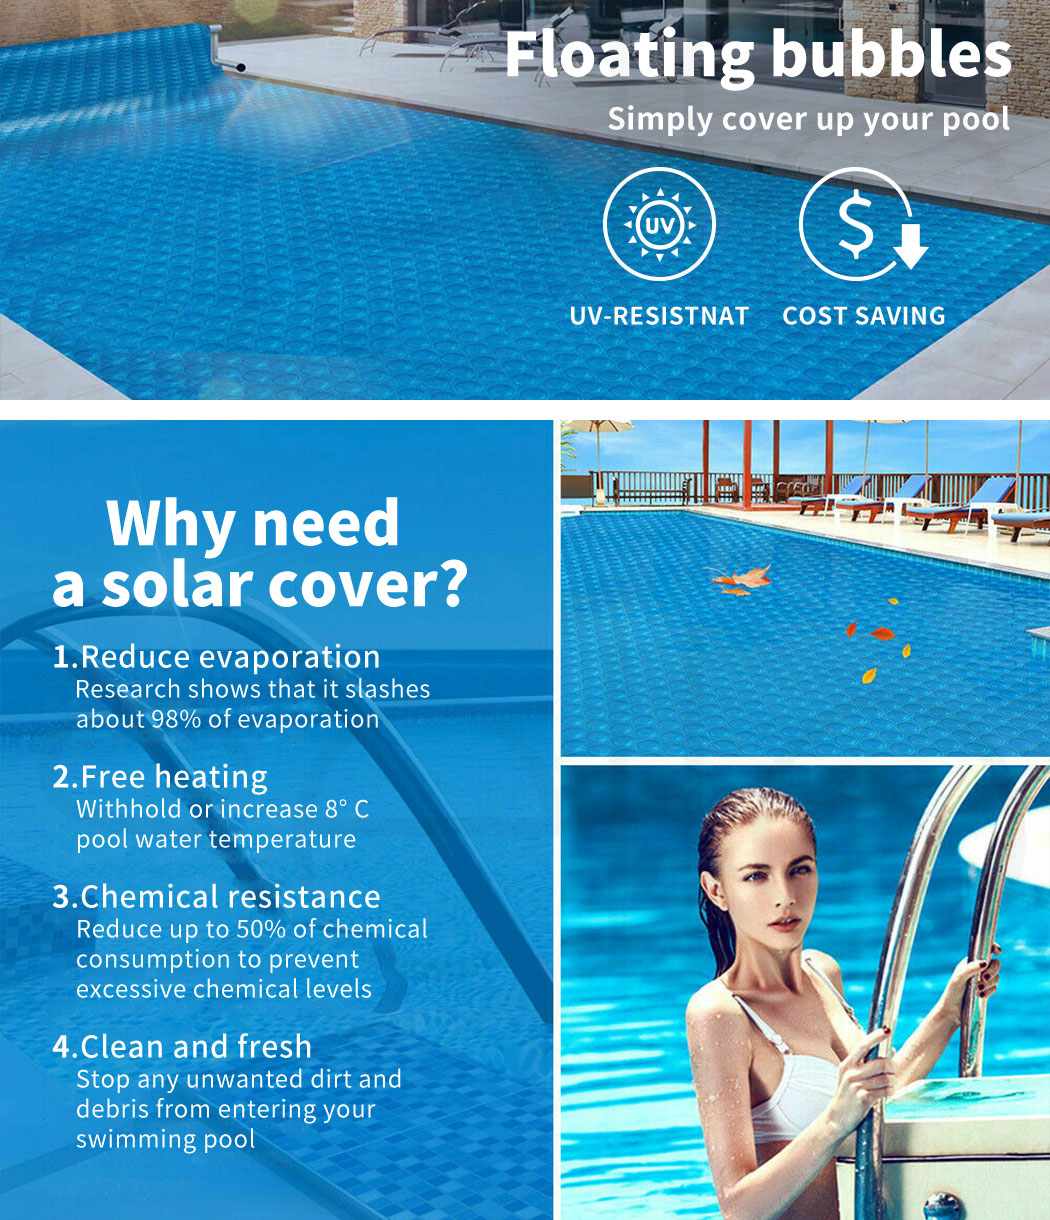 Solar-Swimming-Pool-Cover-400-500-Micron-Outdoor-Bubble-Blanket-Covers-7-Sizes thumbnail 37